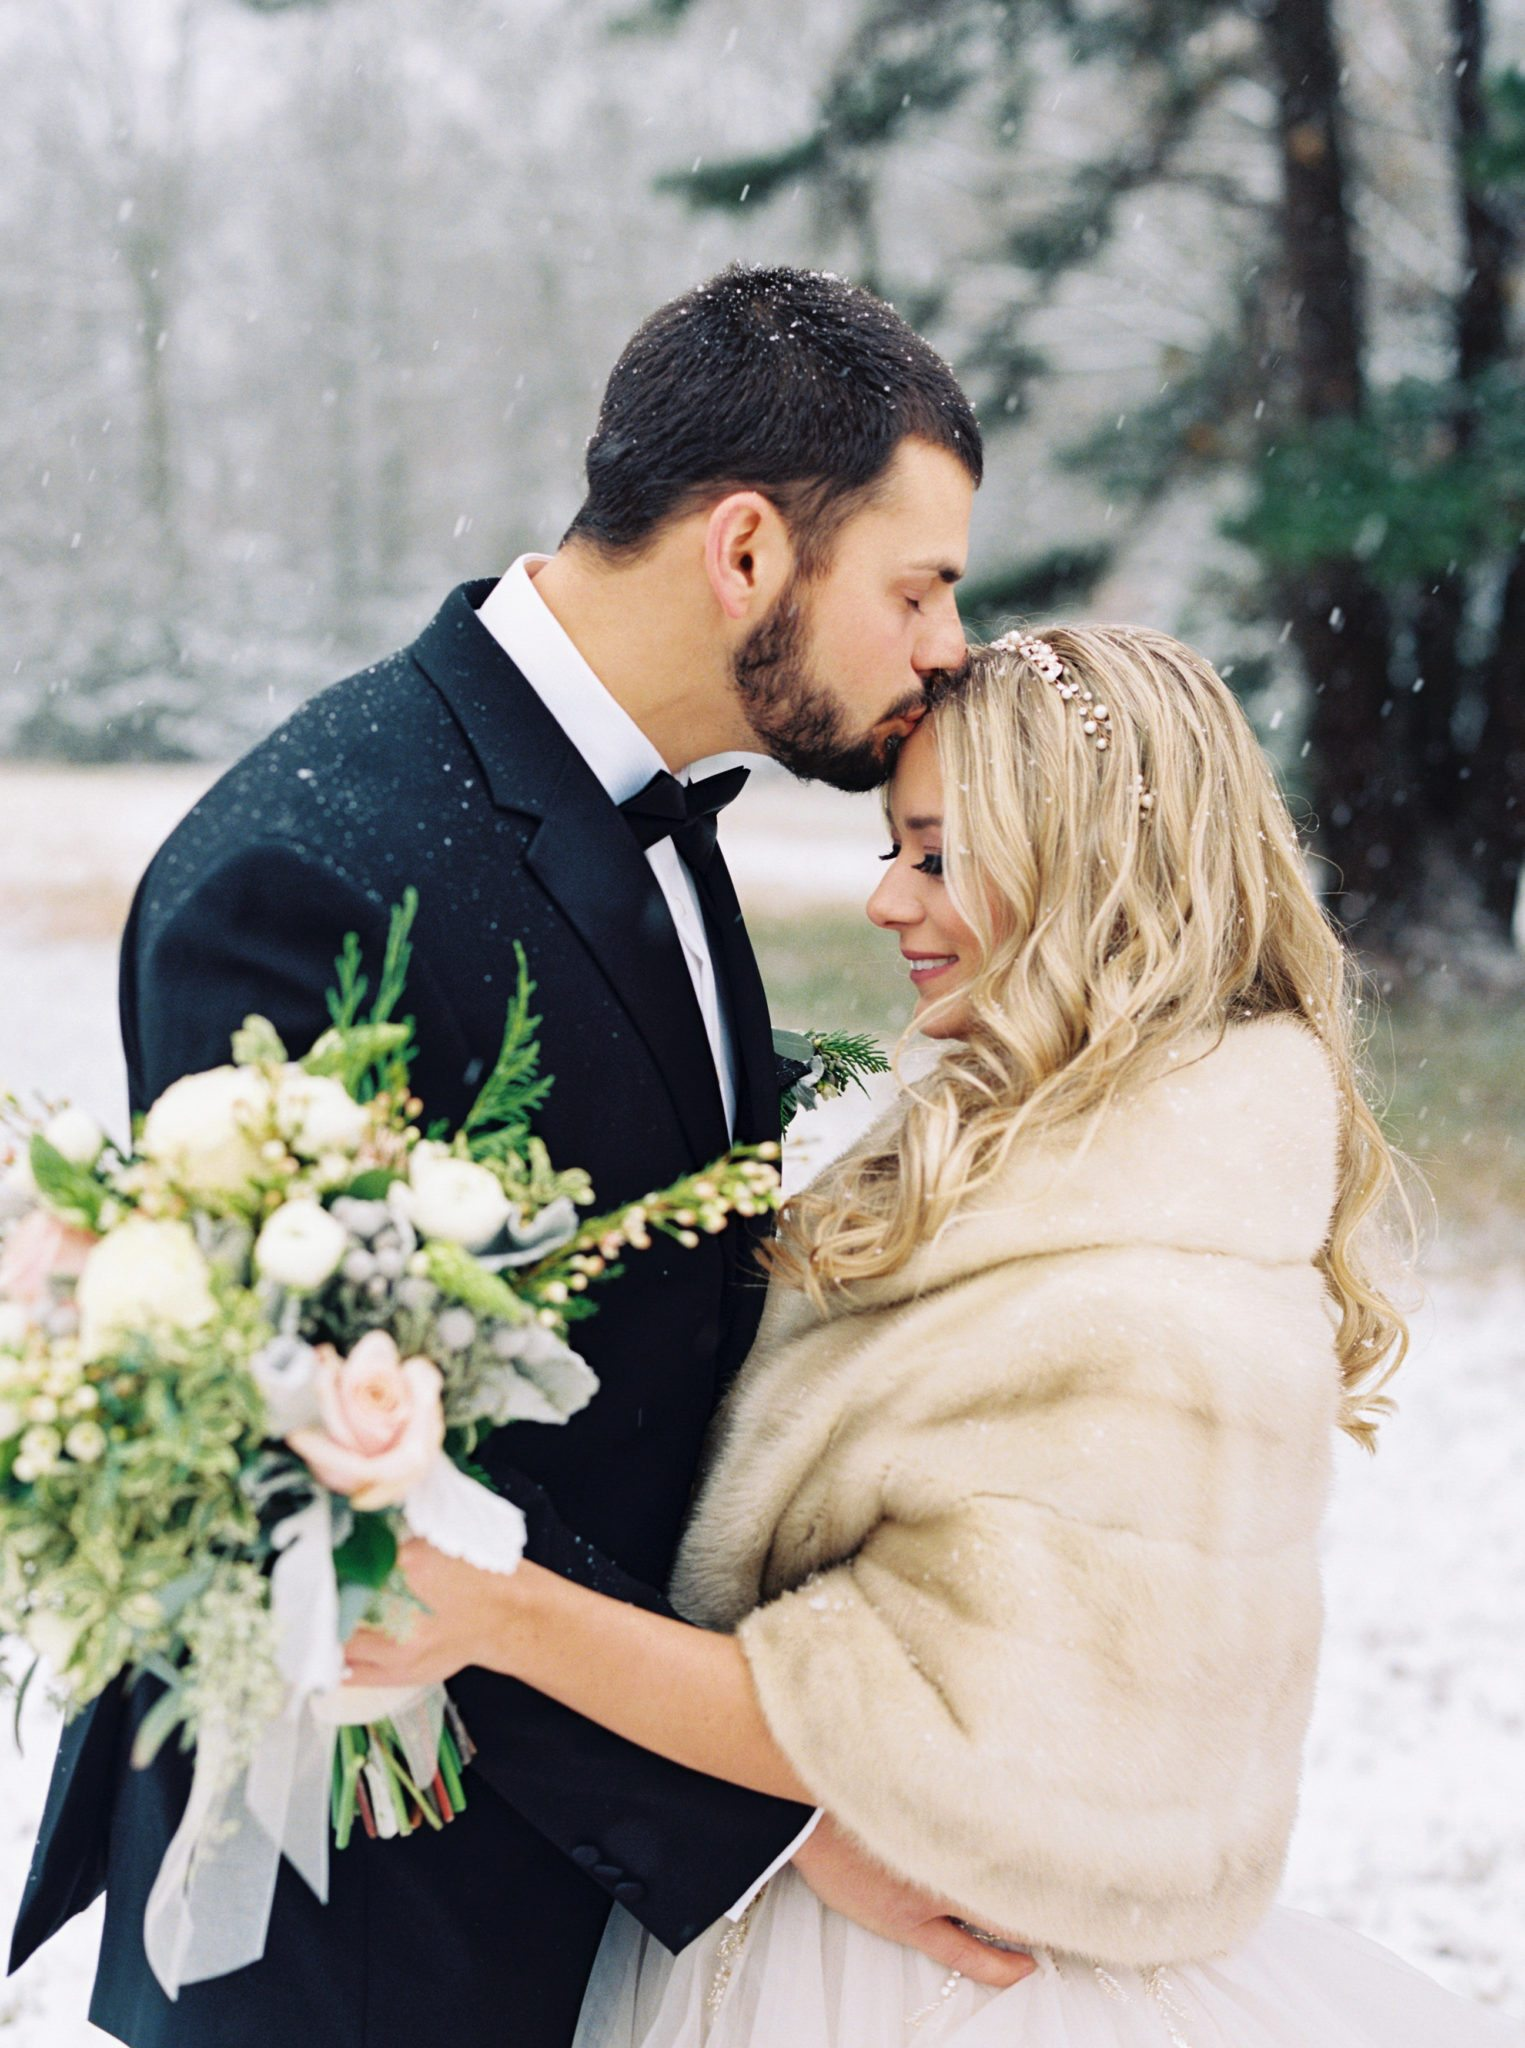 KimStockwellAshleyandMattMoraisVIneyardWedding176 Winter Weddings - A Snow Fairy Tale